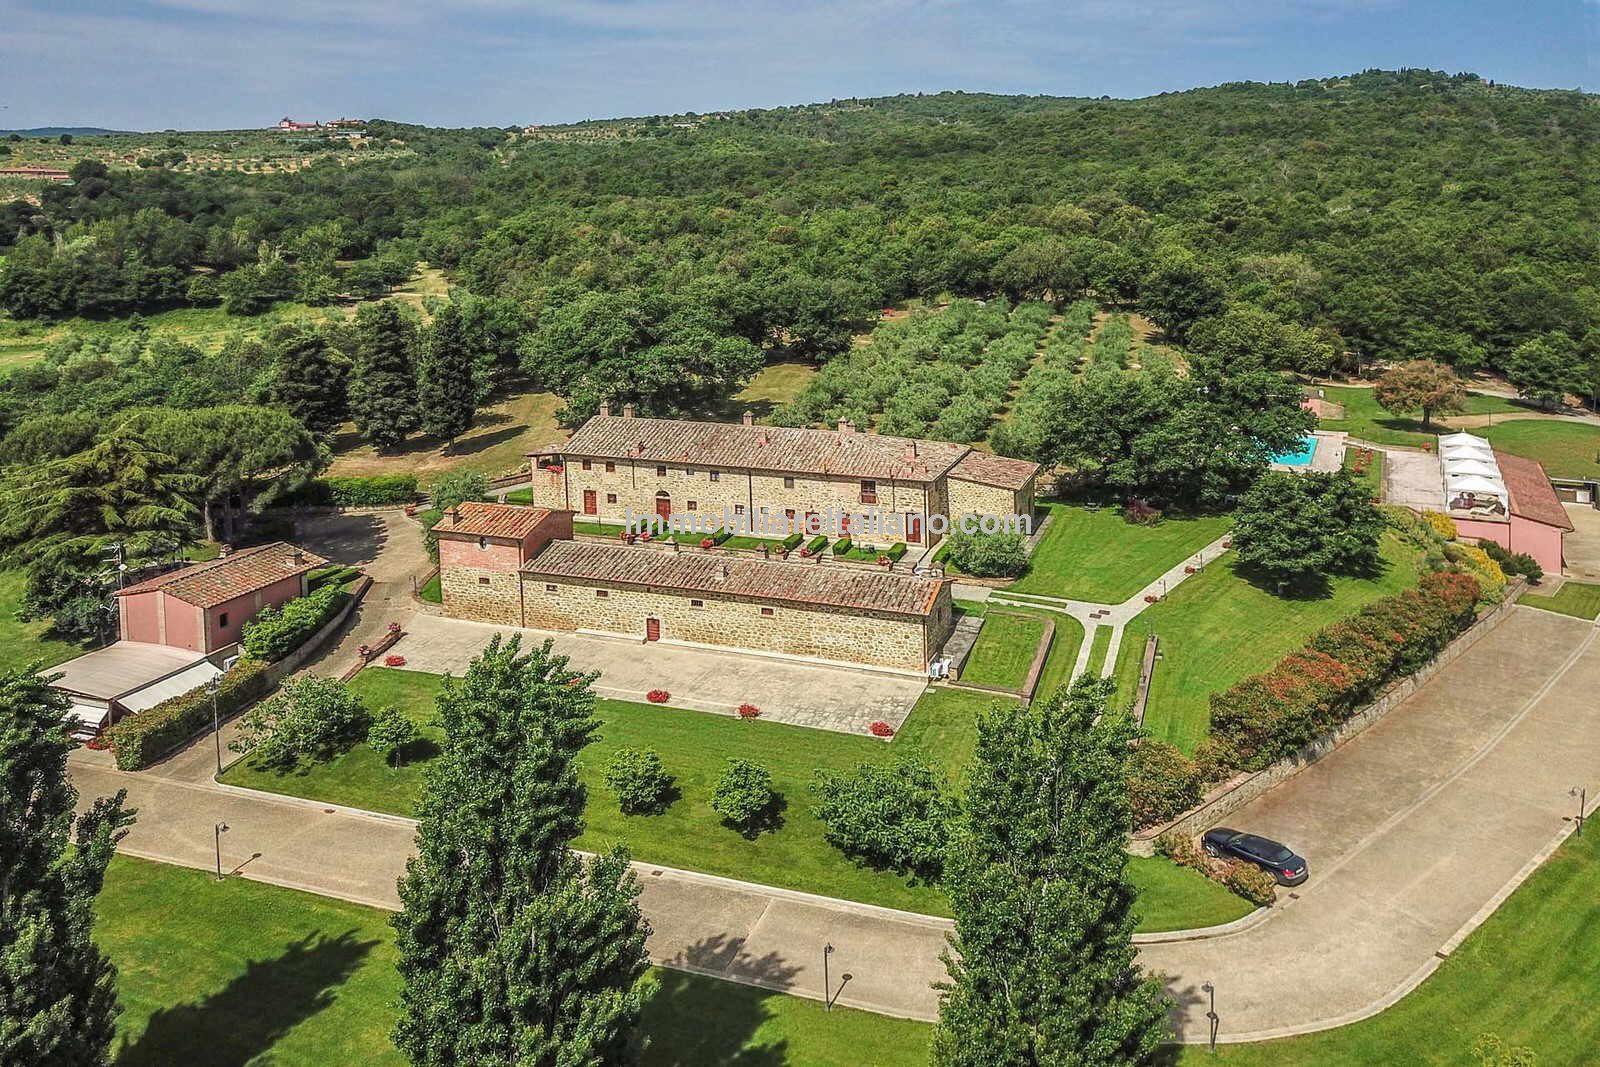 VALDICHIANA WINERY - Wine Estate with Agriturismo for sale in Tuscany